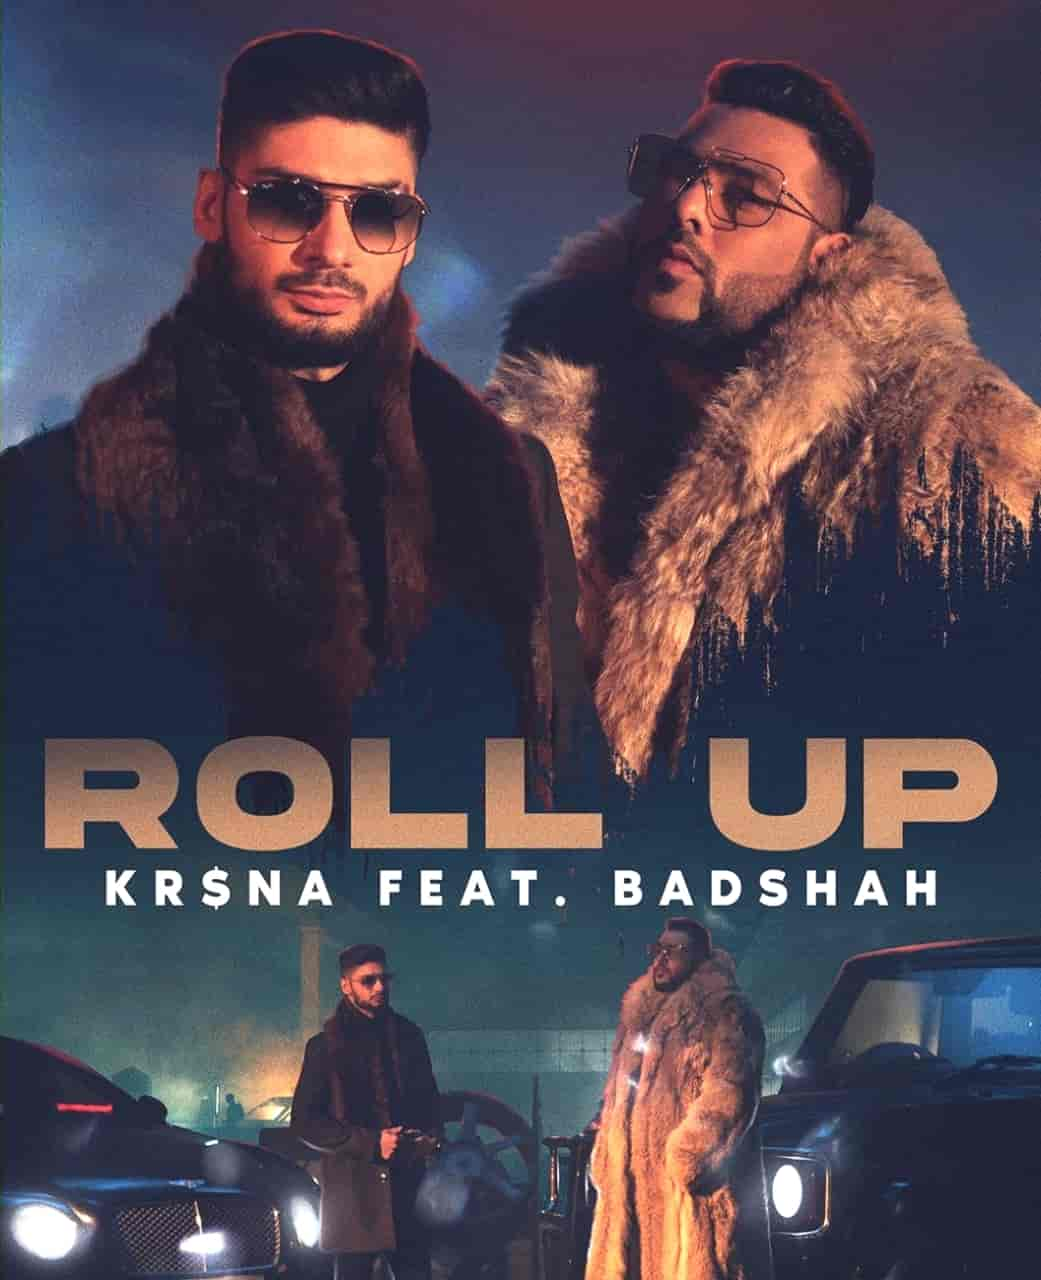 Roll Up Rap Song Lyrics Image Features Kr$na And Badshah